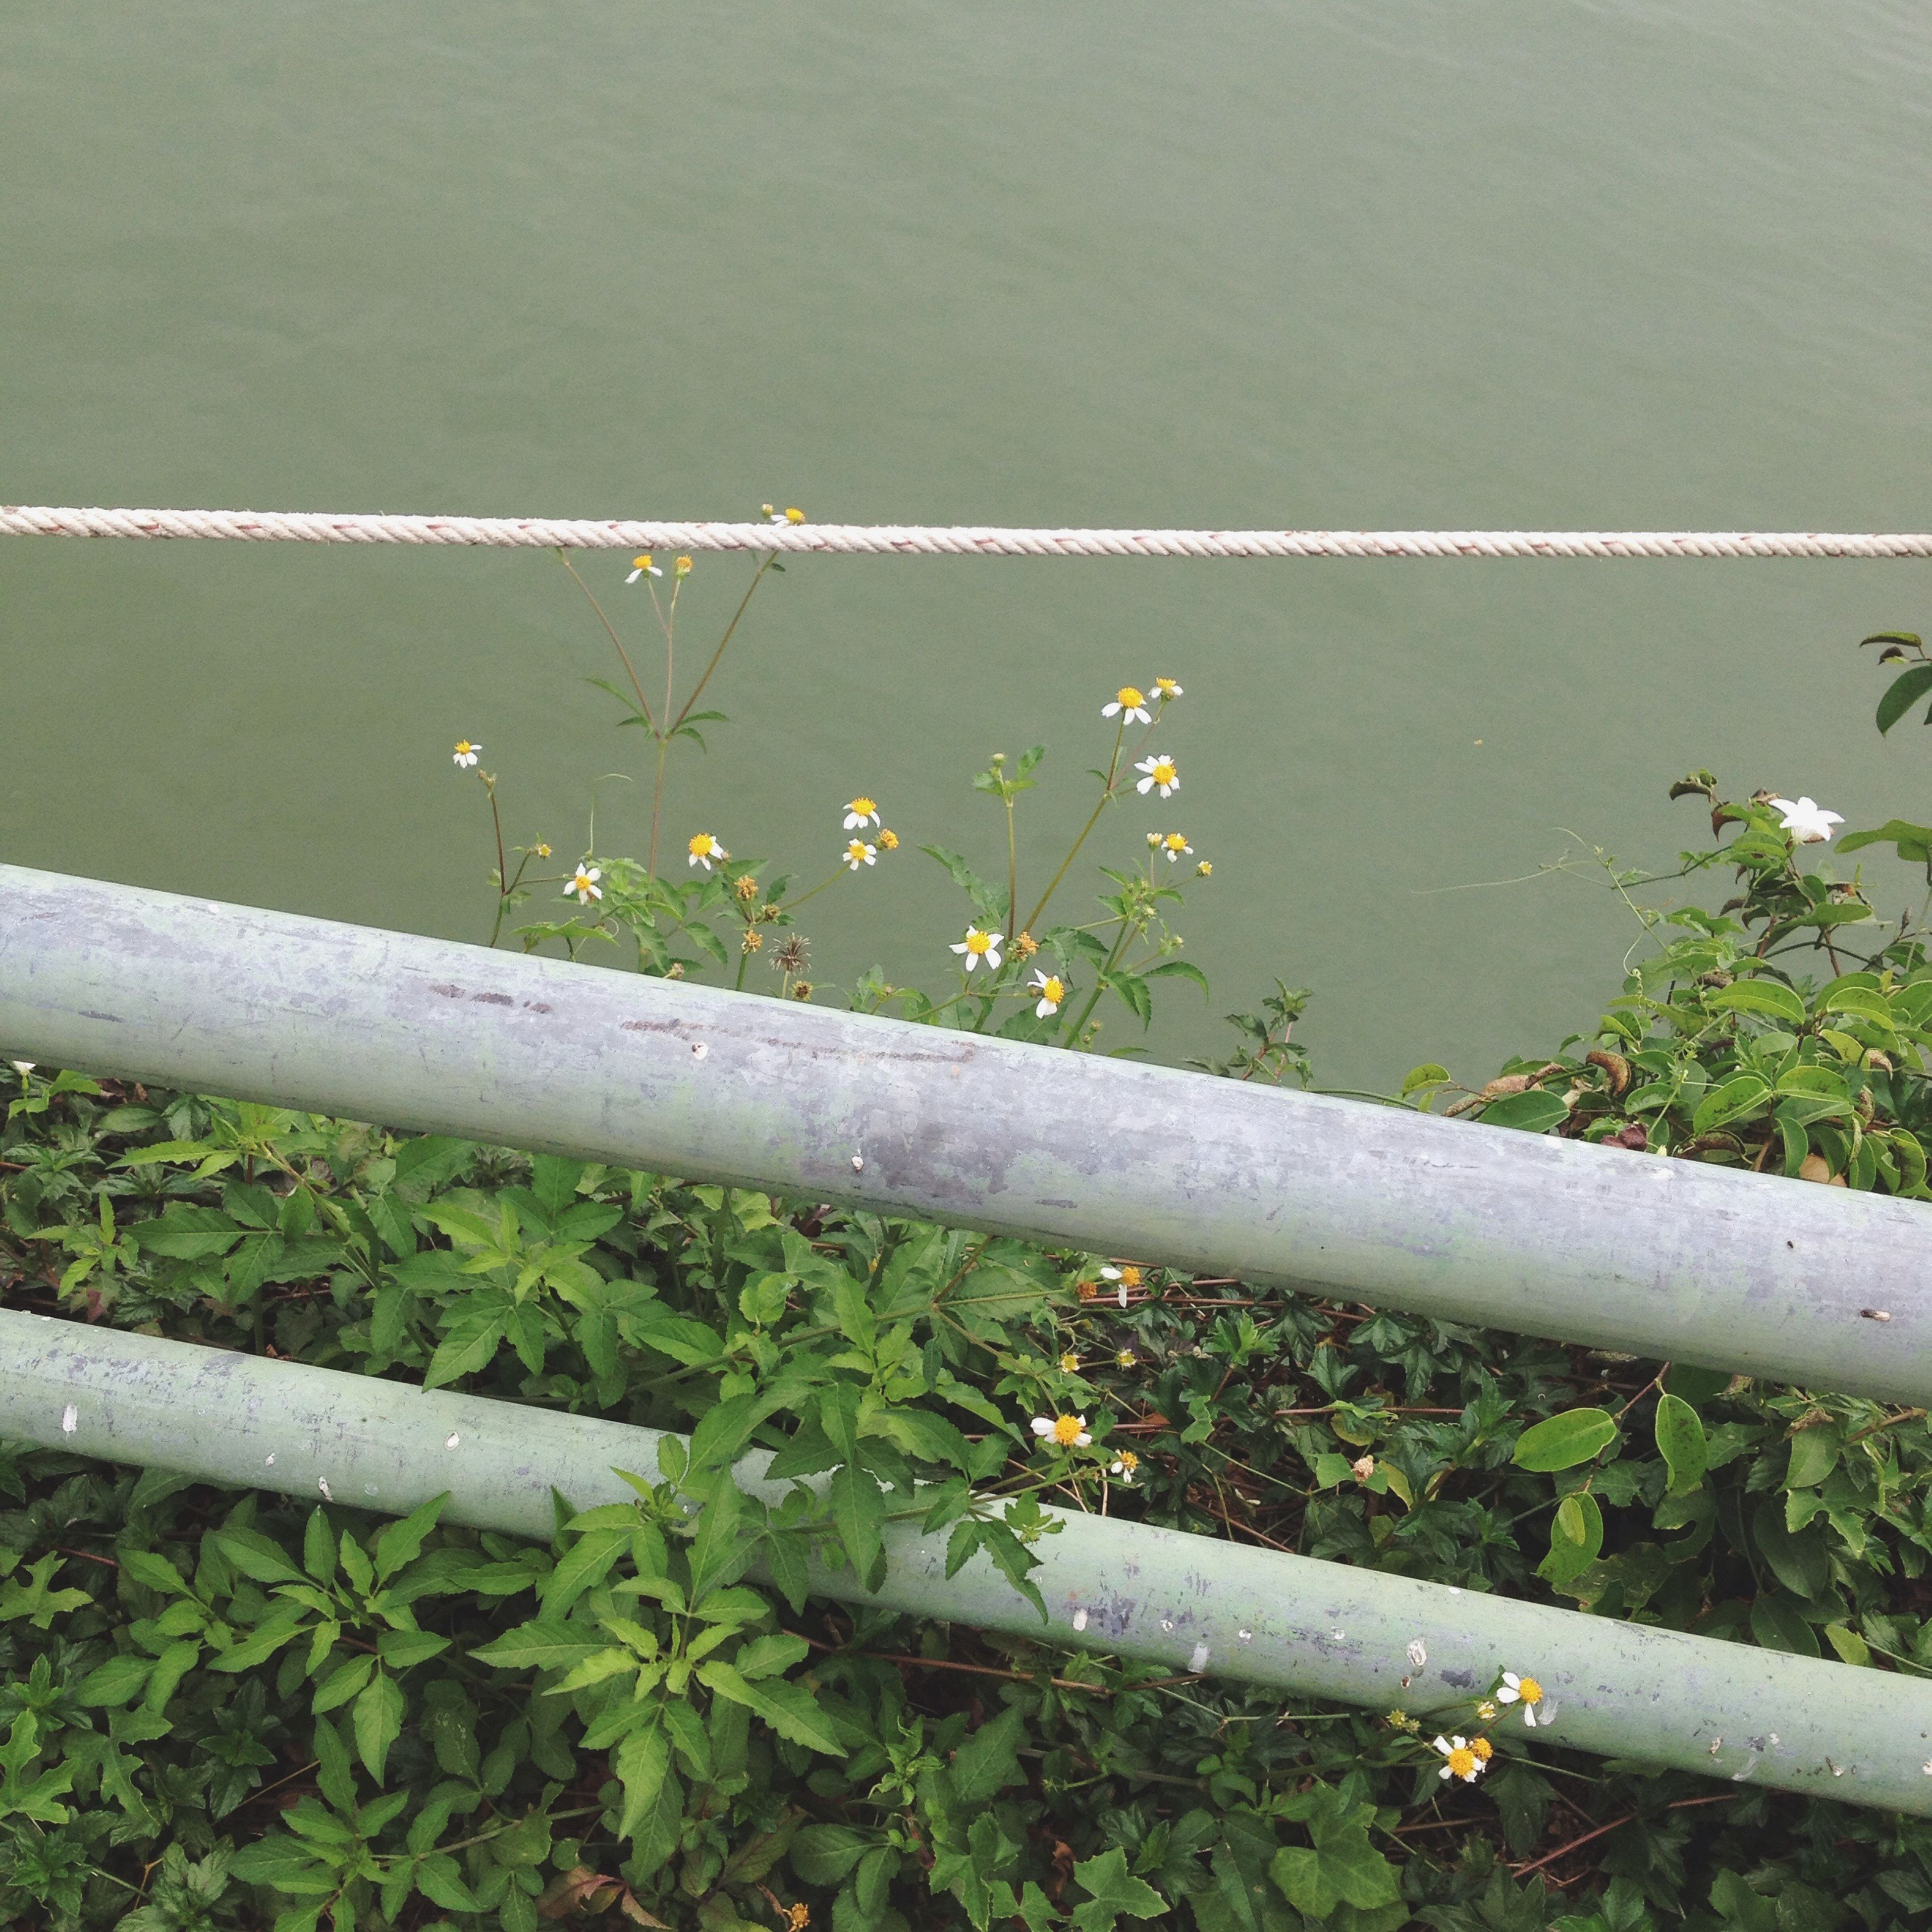 water, flower, plant, growth, high angle view, nature, railing, beauty in nature, tranquility, green color, freshness, day, outdoors, lake, leaf, no people, fragility, river, fence, grass